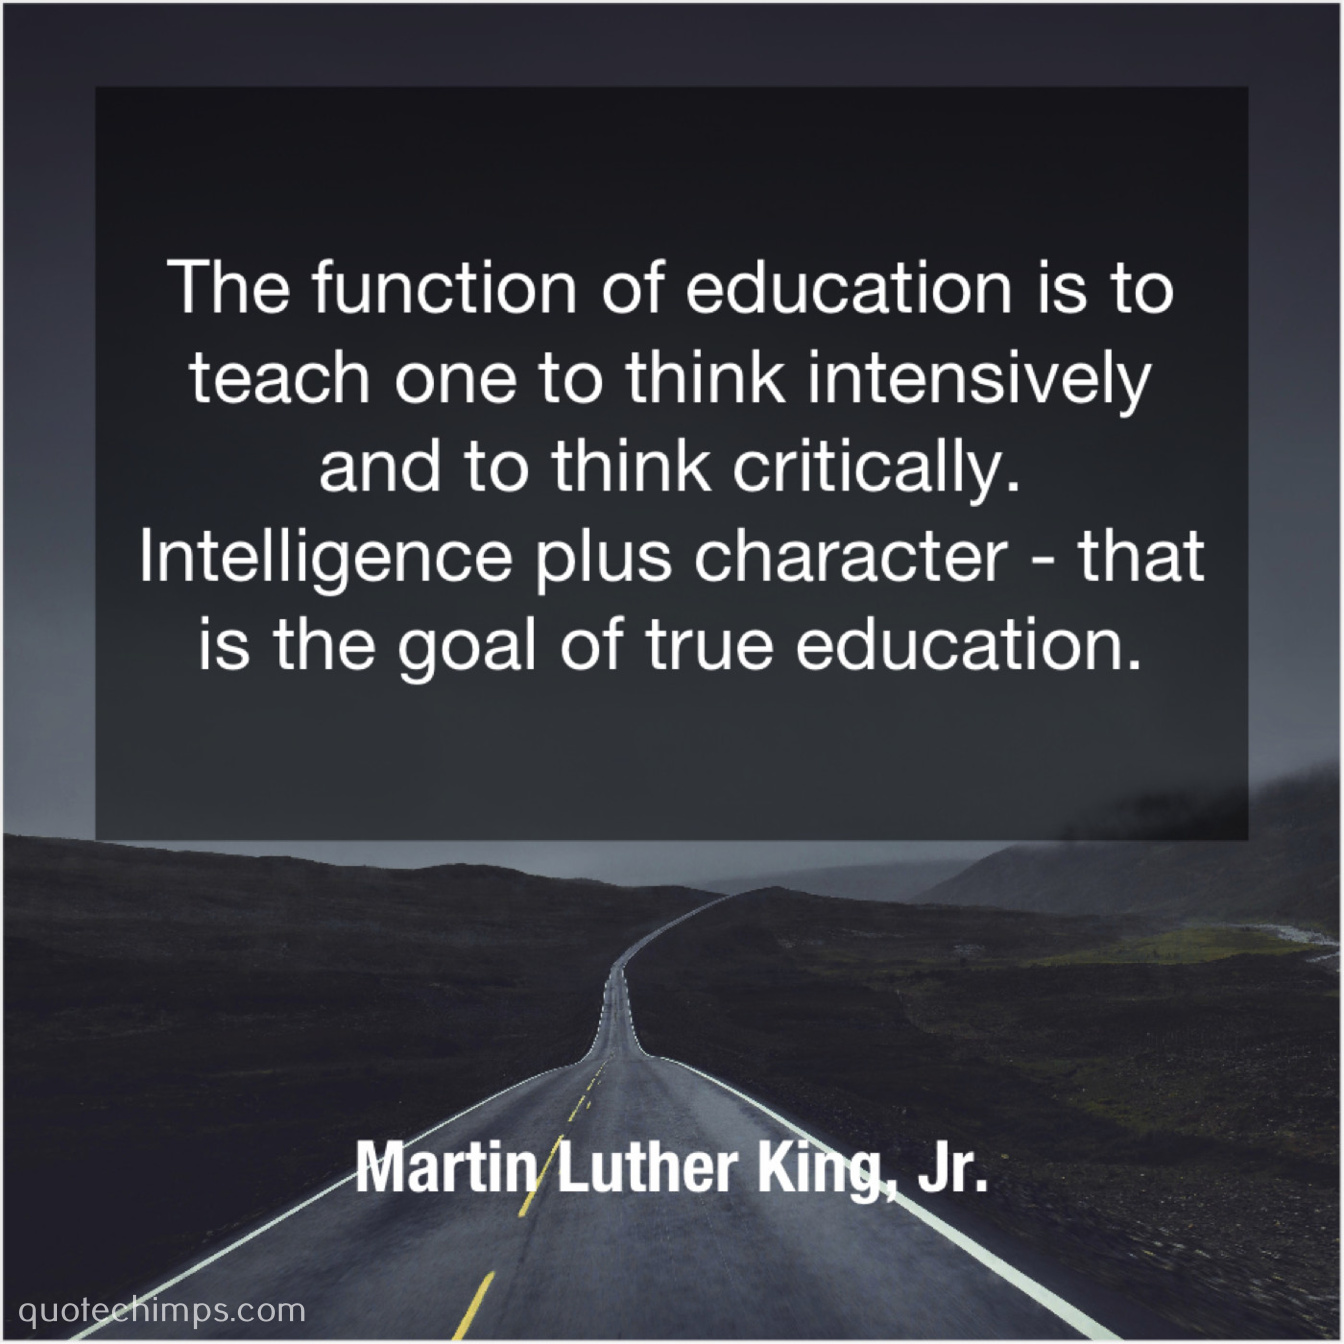 Martin Luther King Jr The Function Of Education Is